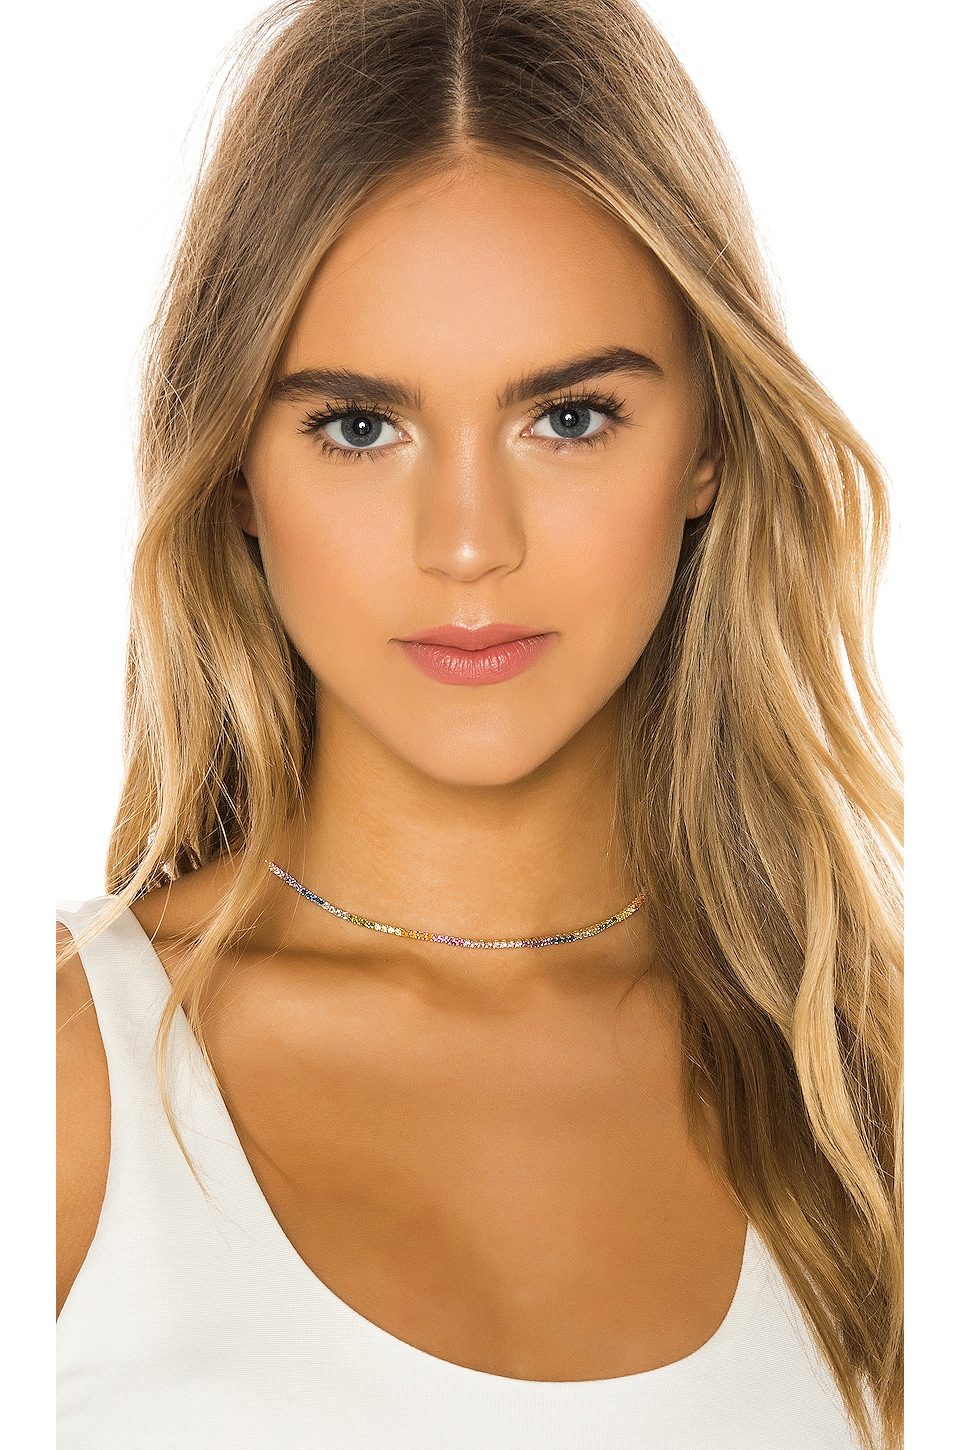 The M Jewelers NY Rainbow Chain Choker in Gold